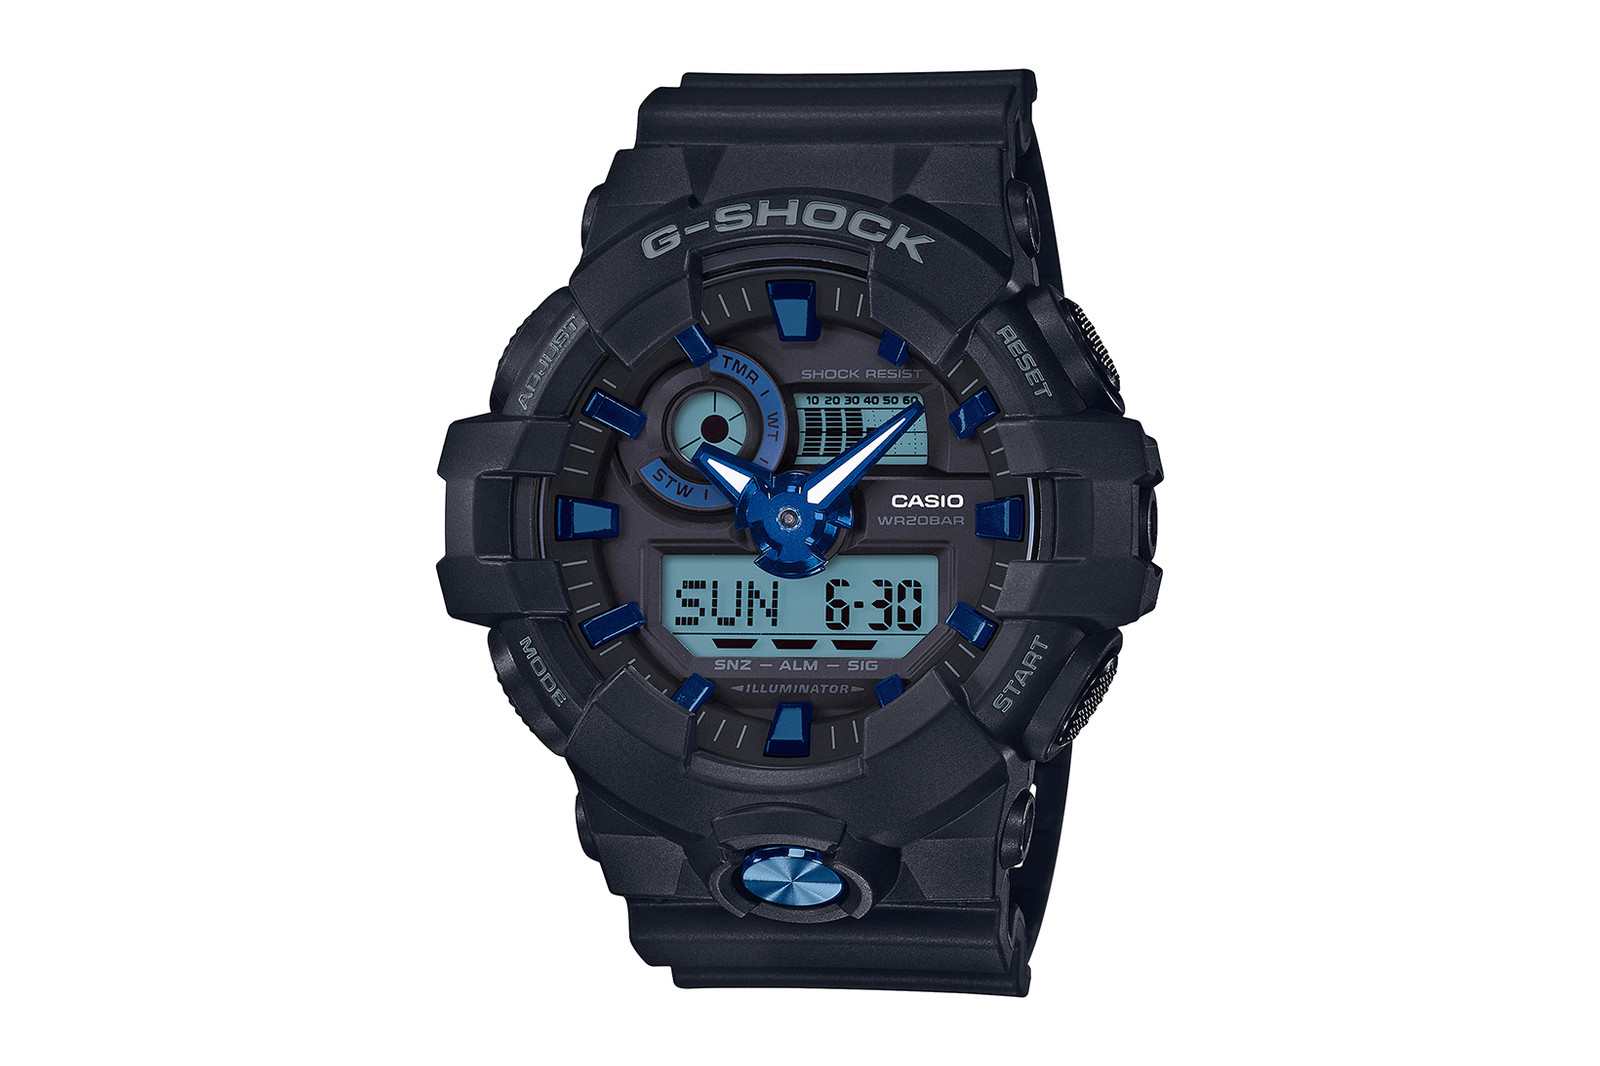 casion G Shock 35th Anniversary We the Gs marketing Campaign ad advertisement Singapore Graffiti Street Art artist Limited Edition Volume 2 Shock Your Style Clog Two Visual Engineer